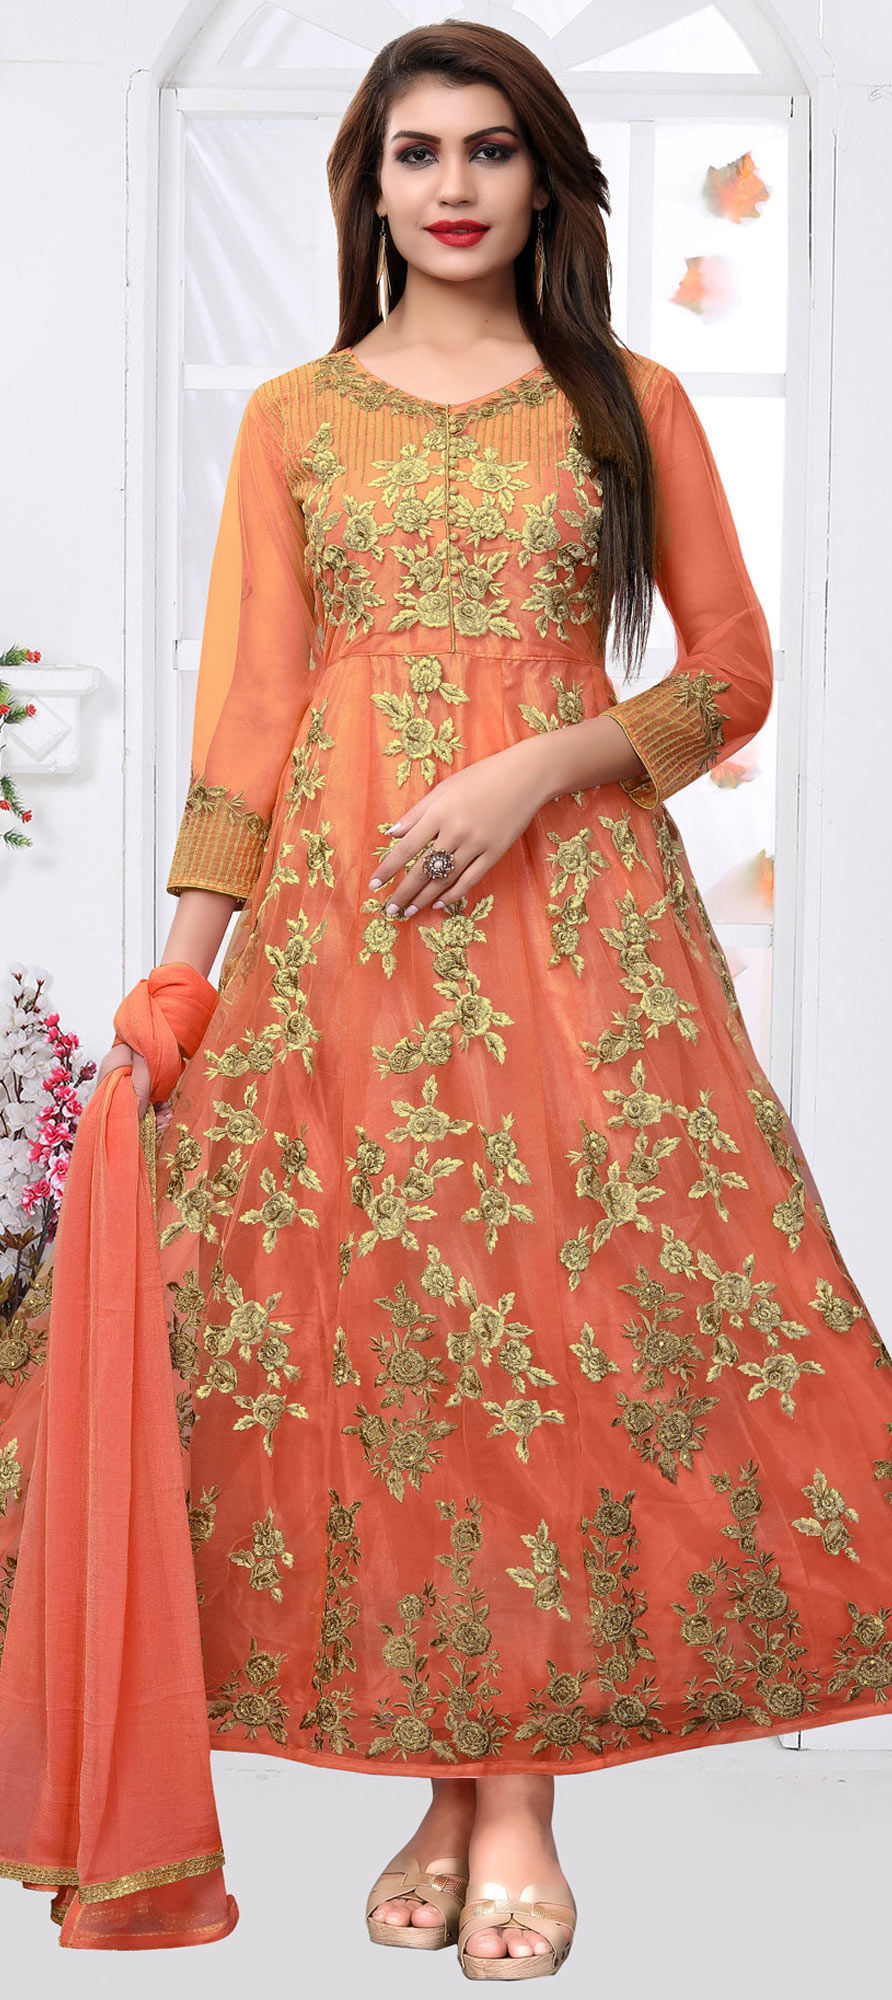 Net Casual Salwar Kameez in Orange with Thread work